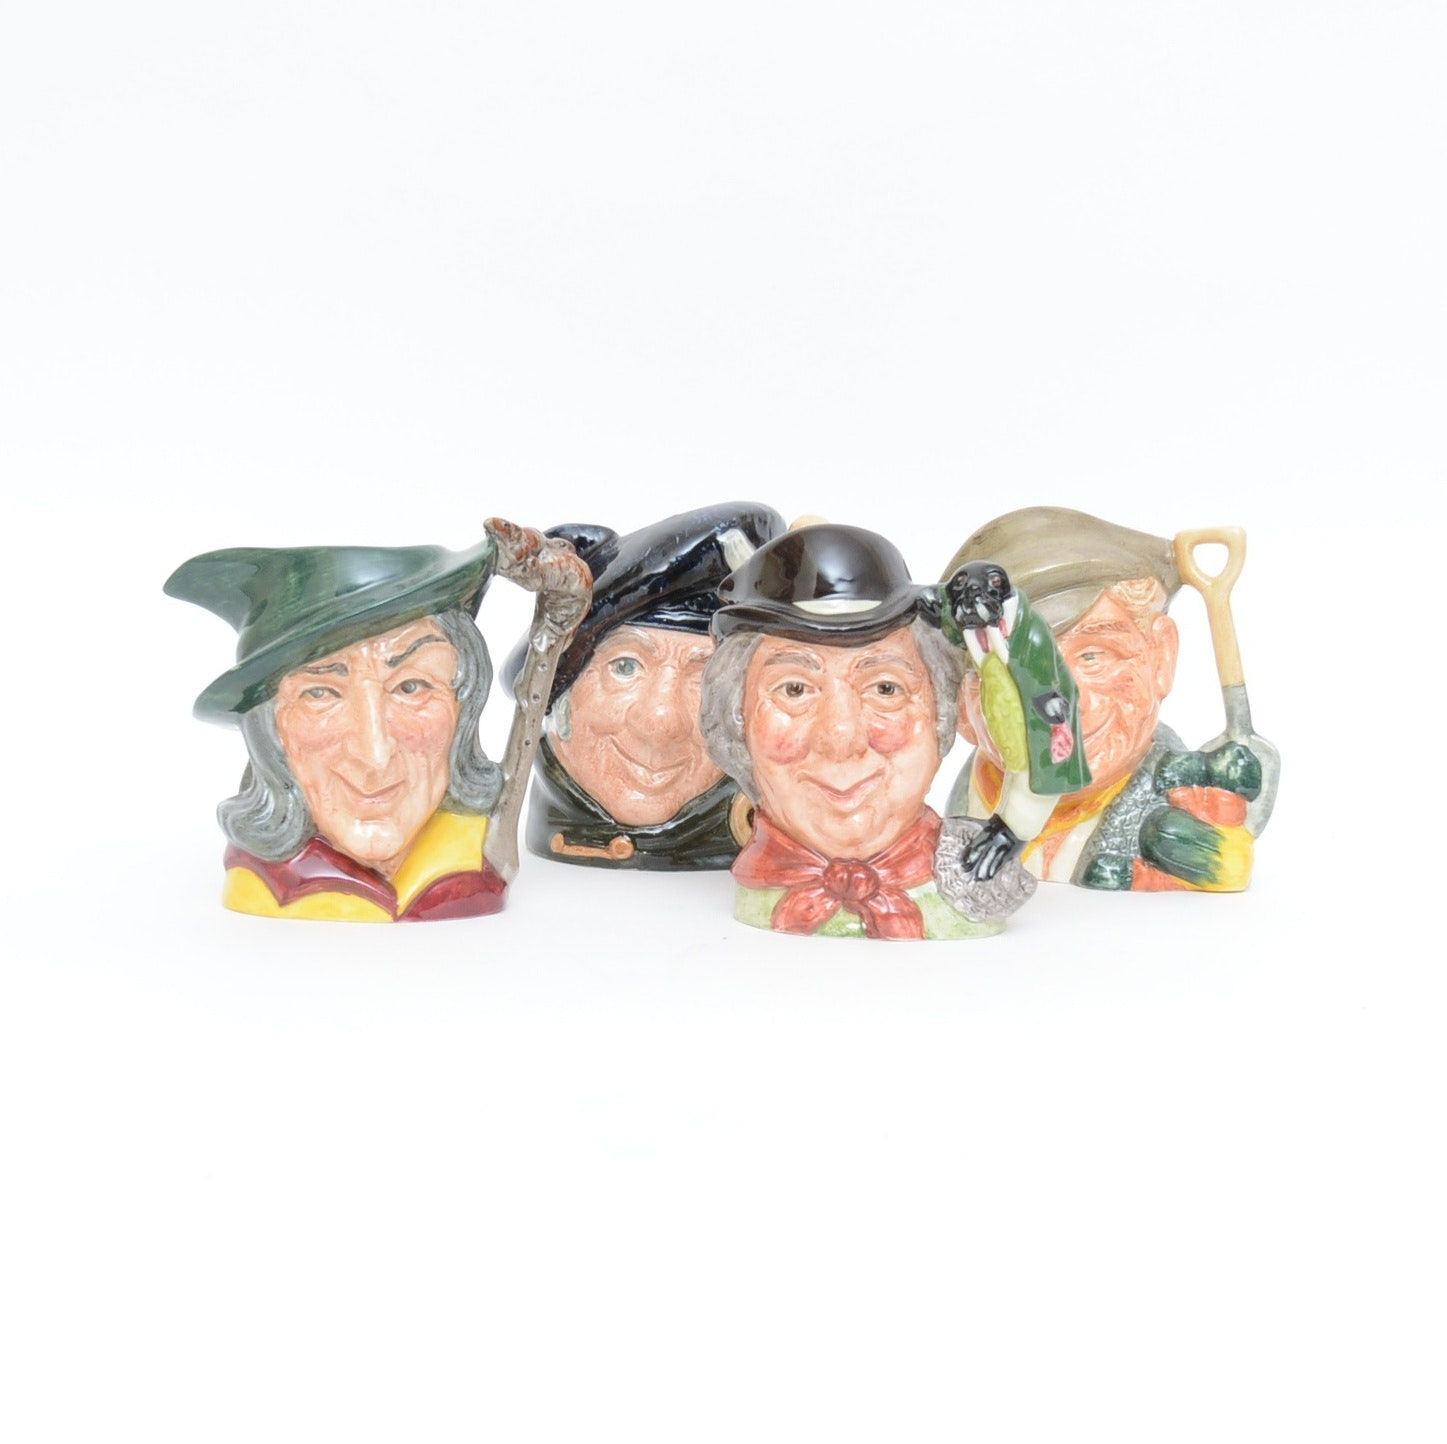 Collection of Vintage Royal Doulton Character Jugs